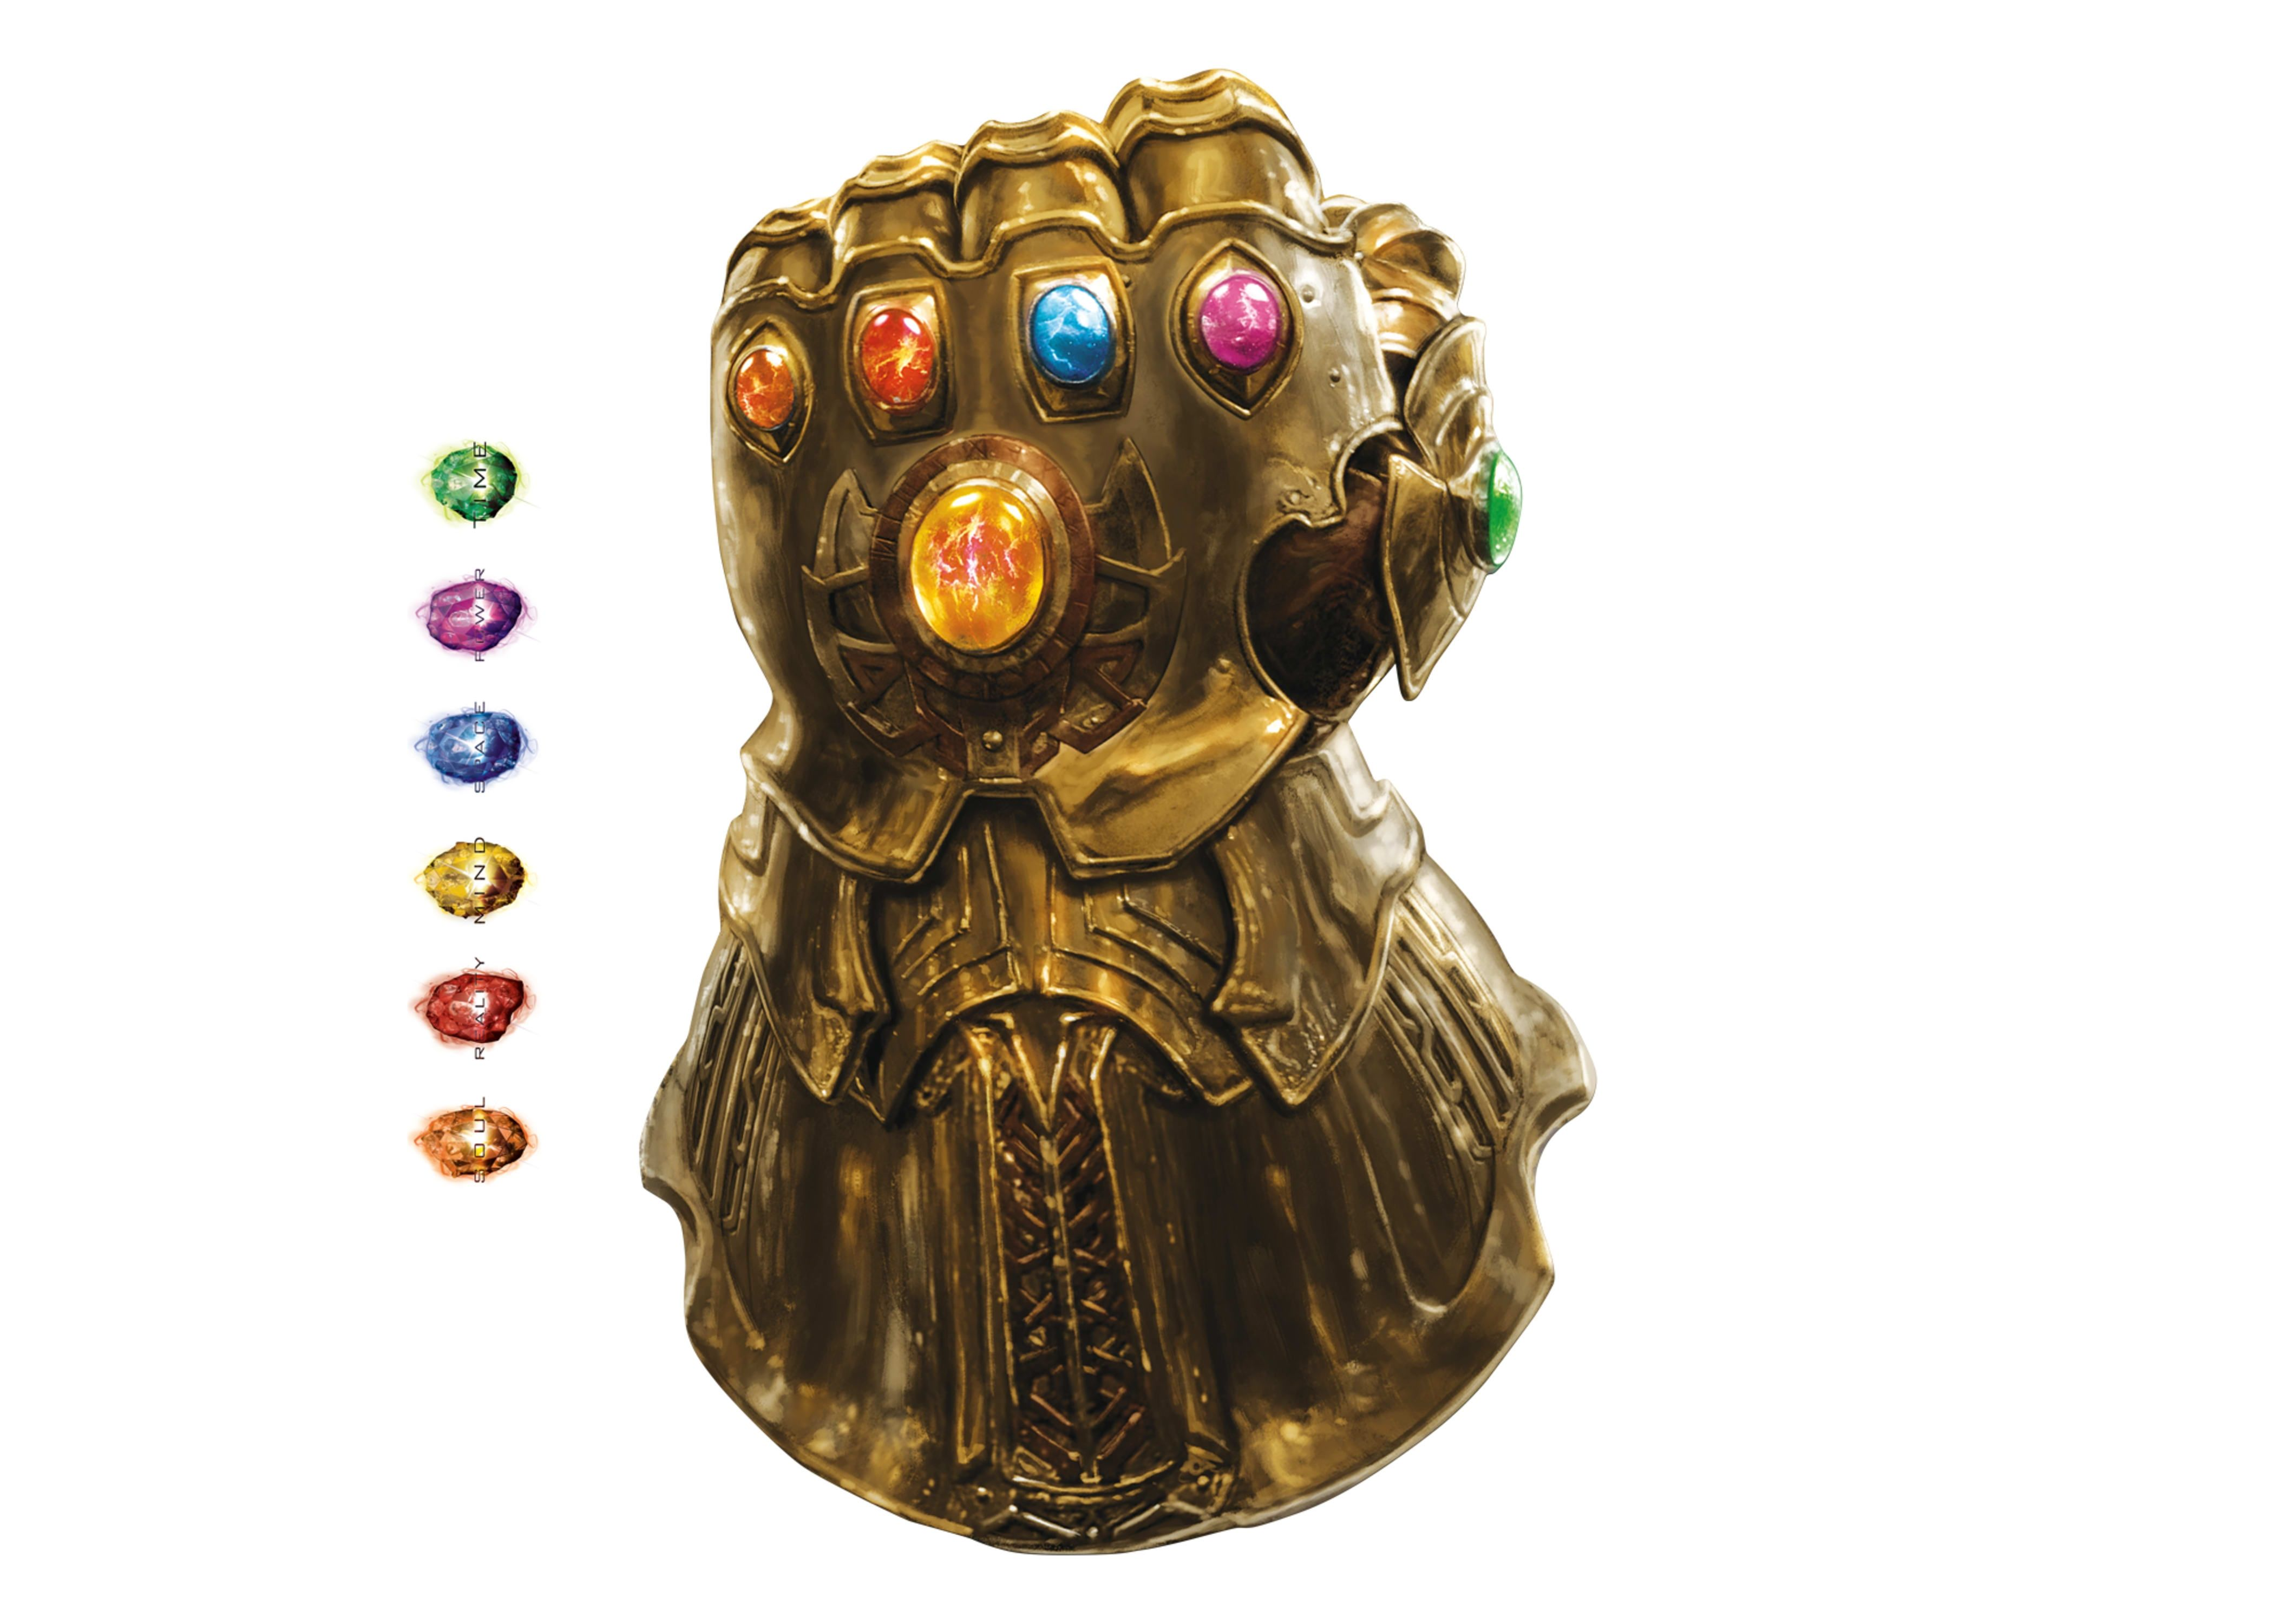 Avengers Infinity War Fathead Decals Reveal Awesome New Promo Art Of The Many Heroes Villains The Infinity Gauntlet Groot Avengers Drax The Destroyer